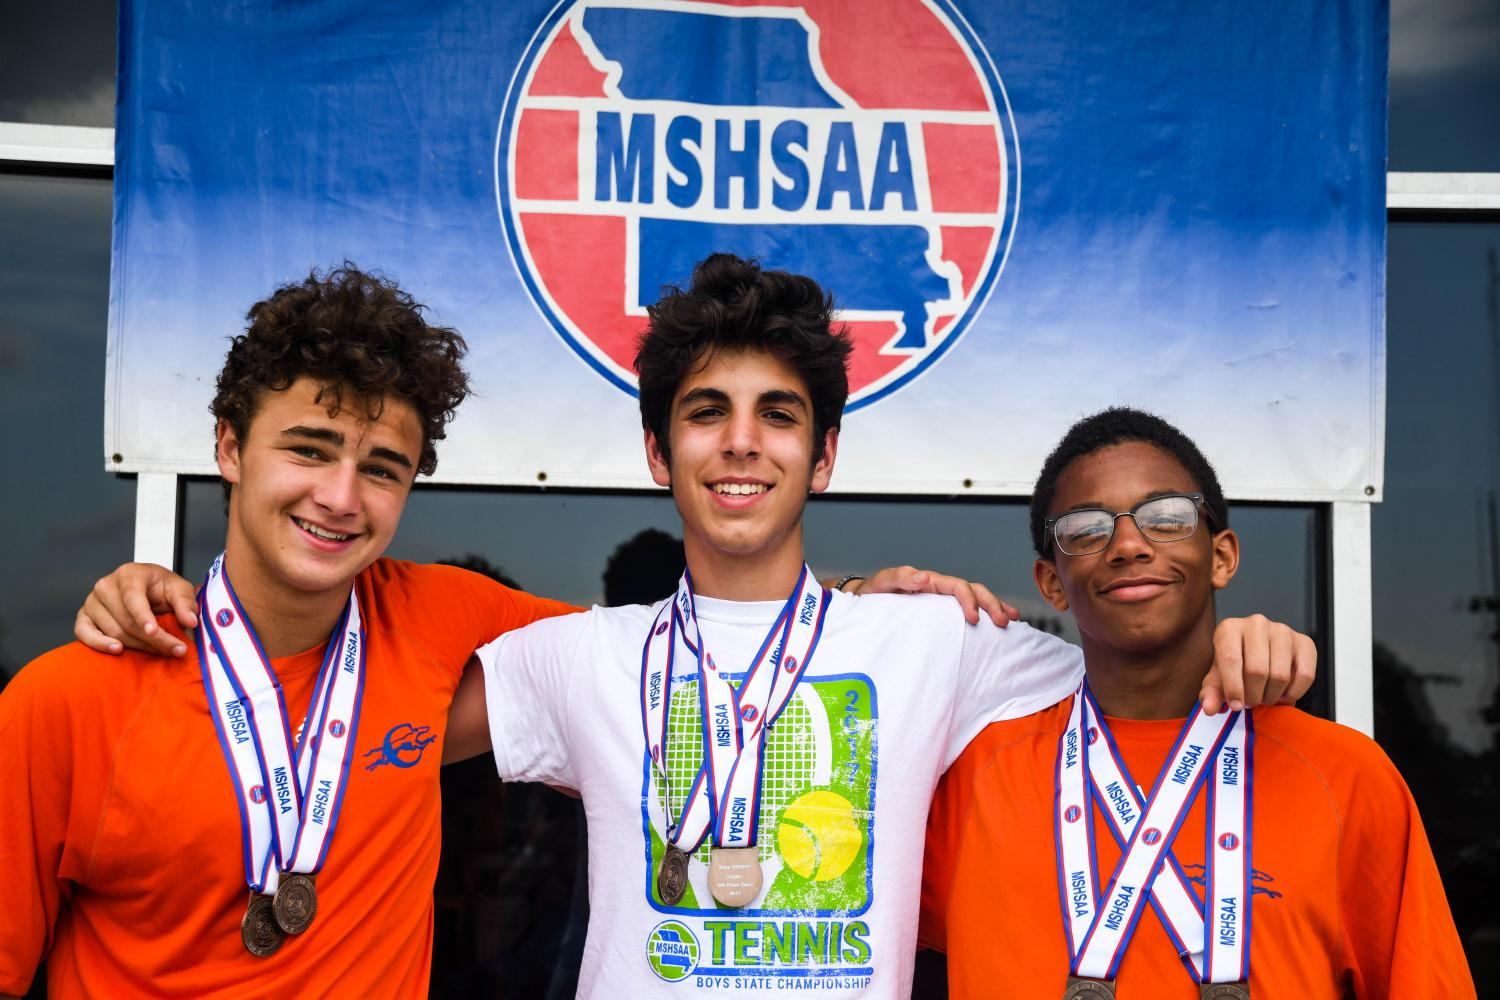 CHS boys varsity tennis team after state tournament.  Erik James (left), Noah Brown (middle), and Angelo Vidal (right).  Photo by Michael Melinger.